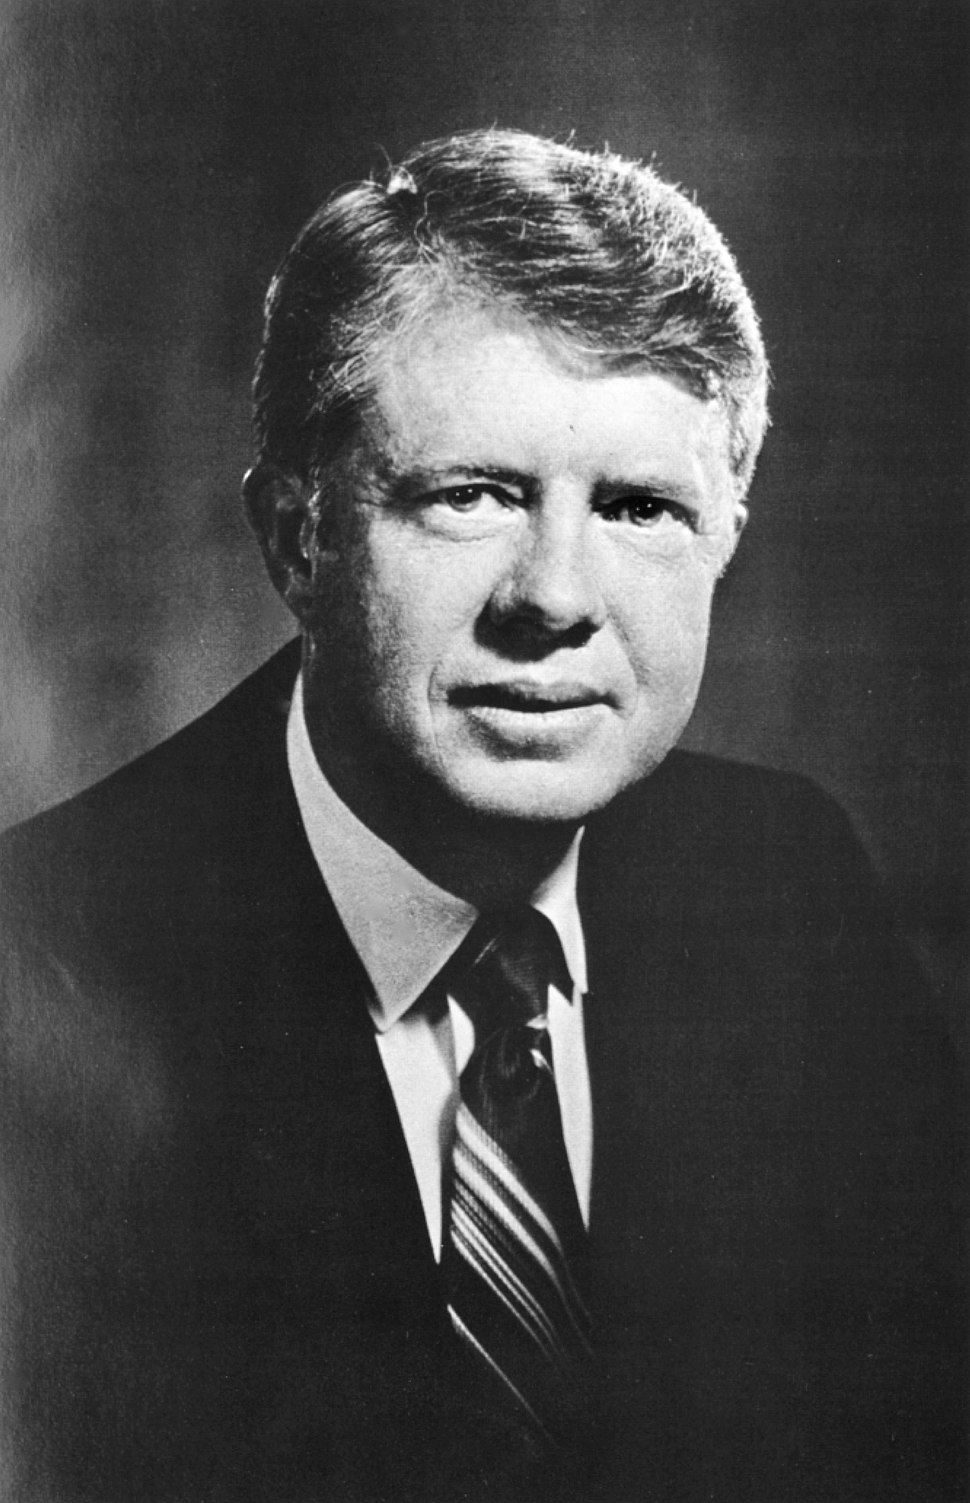 Jimmy Carter official portrait as Governor